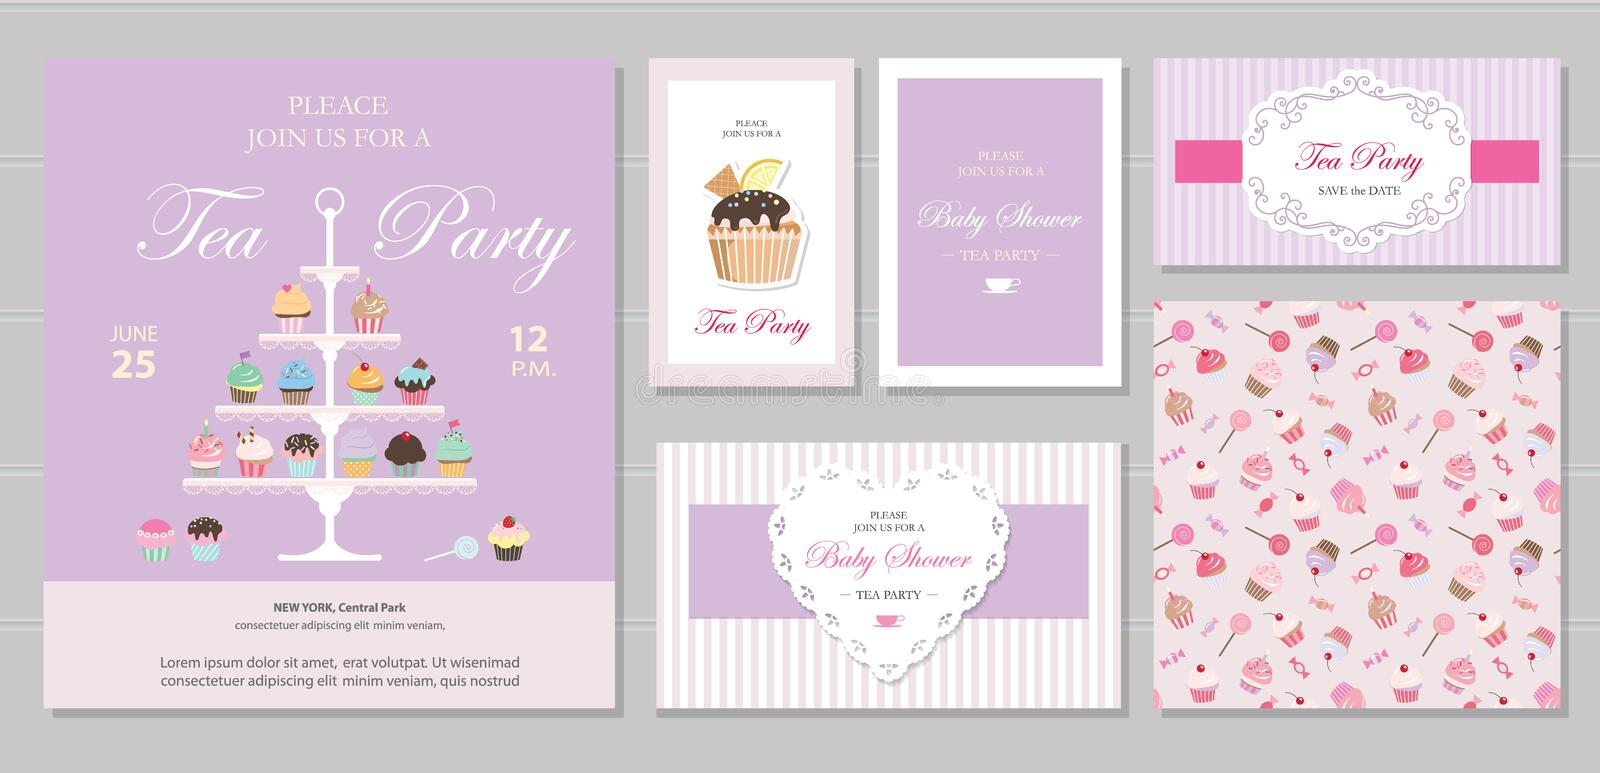 Cute templates with cupcakes stand and sweets in pastel colors. Cards and posters. For bridal, baby shower, birthday. vector illustration